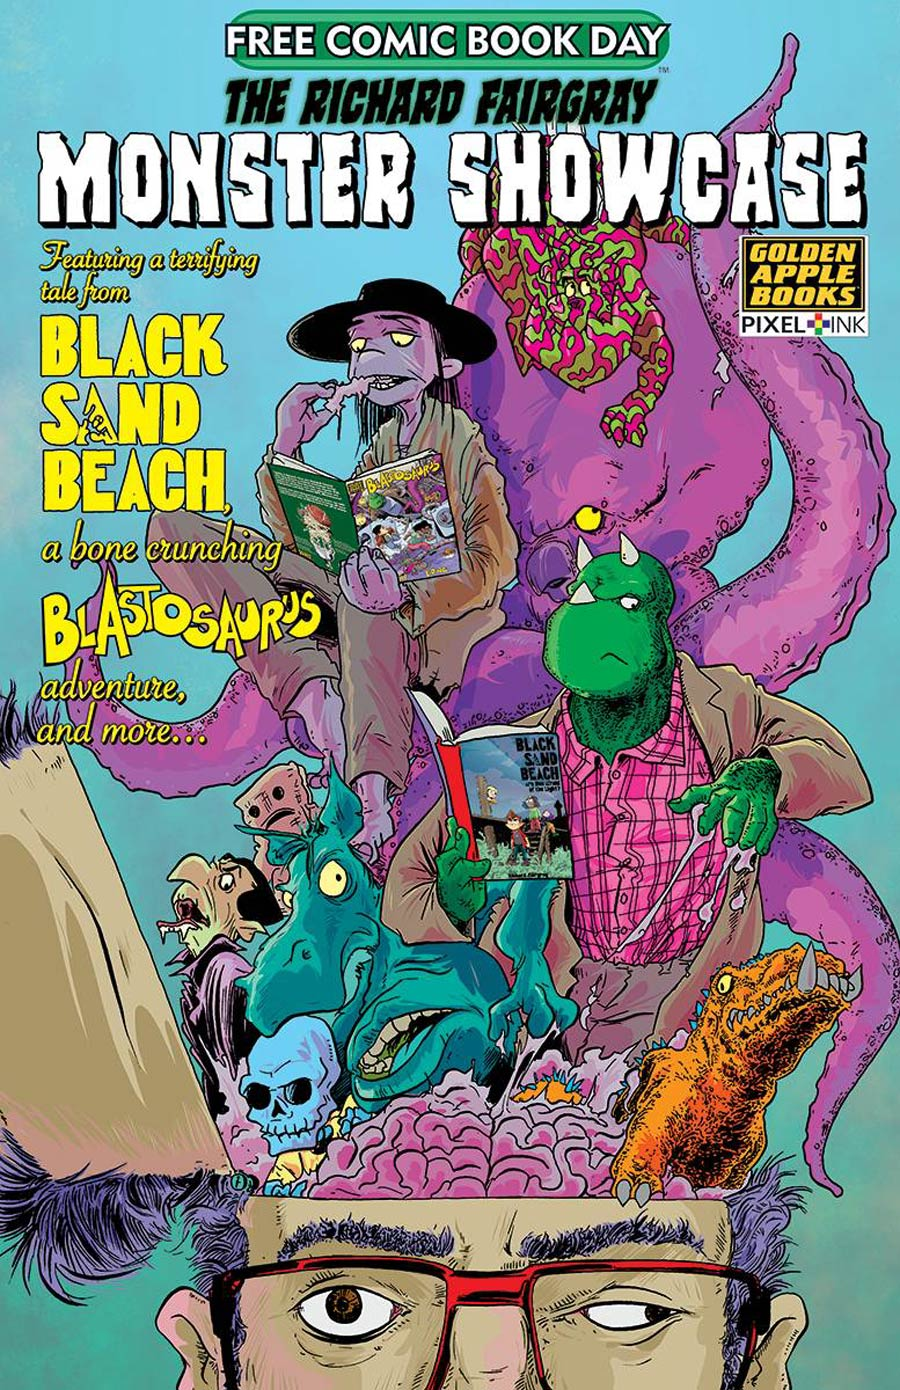 FCBD 2020 Richard Fairgray Monster Showcase #1 (2020)